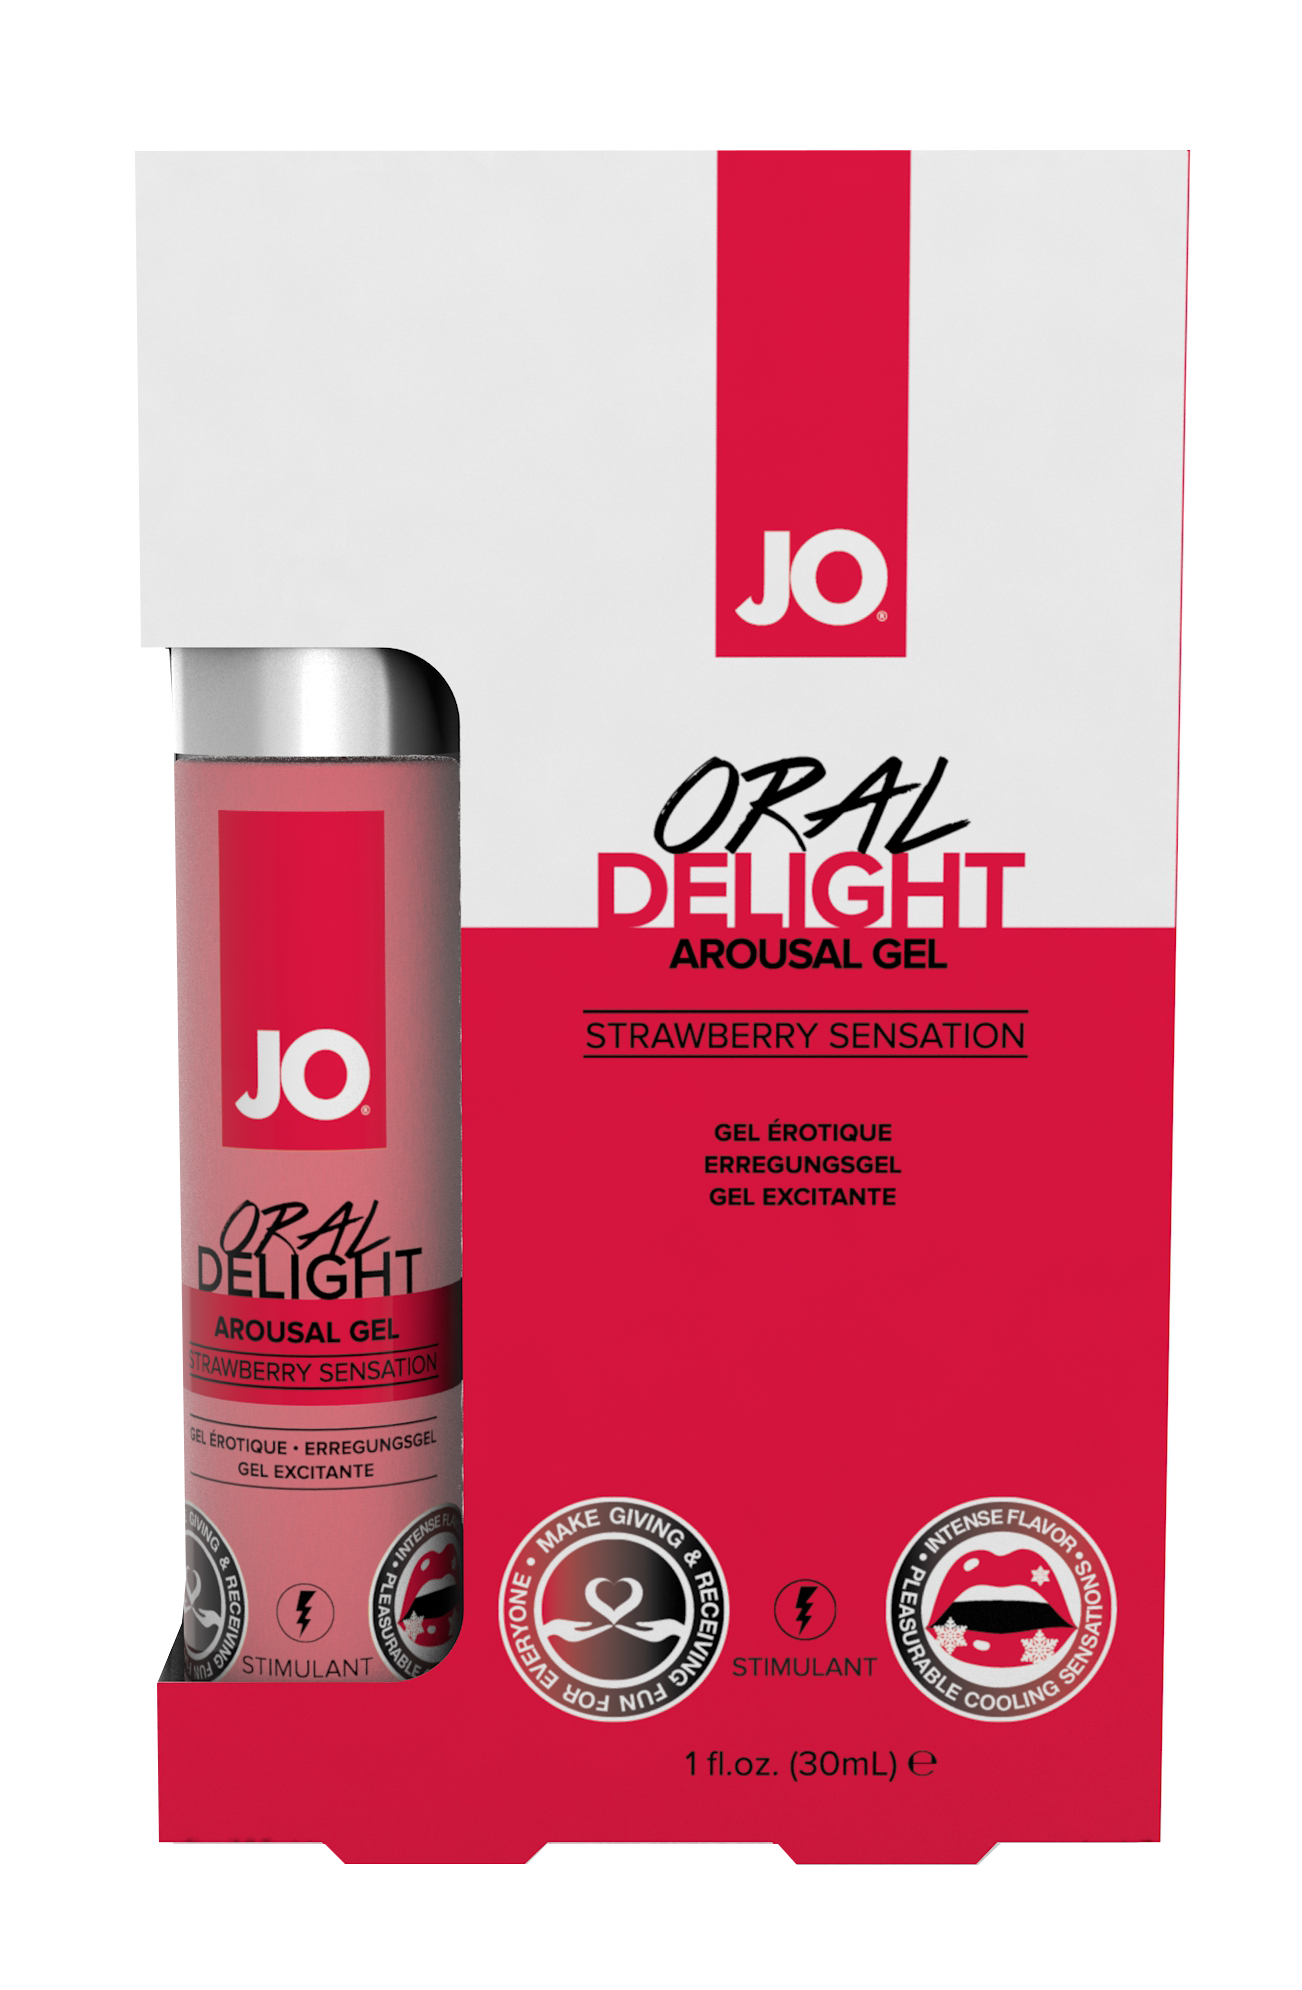 40481 - JO ORAL DELIGHT - STRAWBERRY SENSATION - 1fl.oz 30mL  (MOQ 12 units - Includes Counter Display C.png